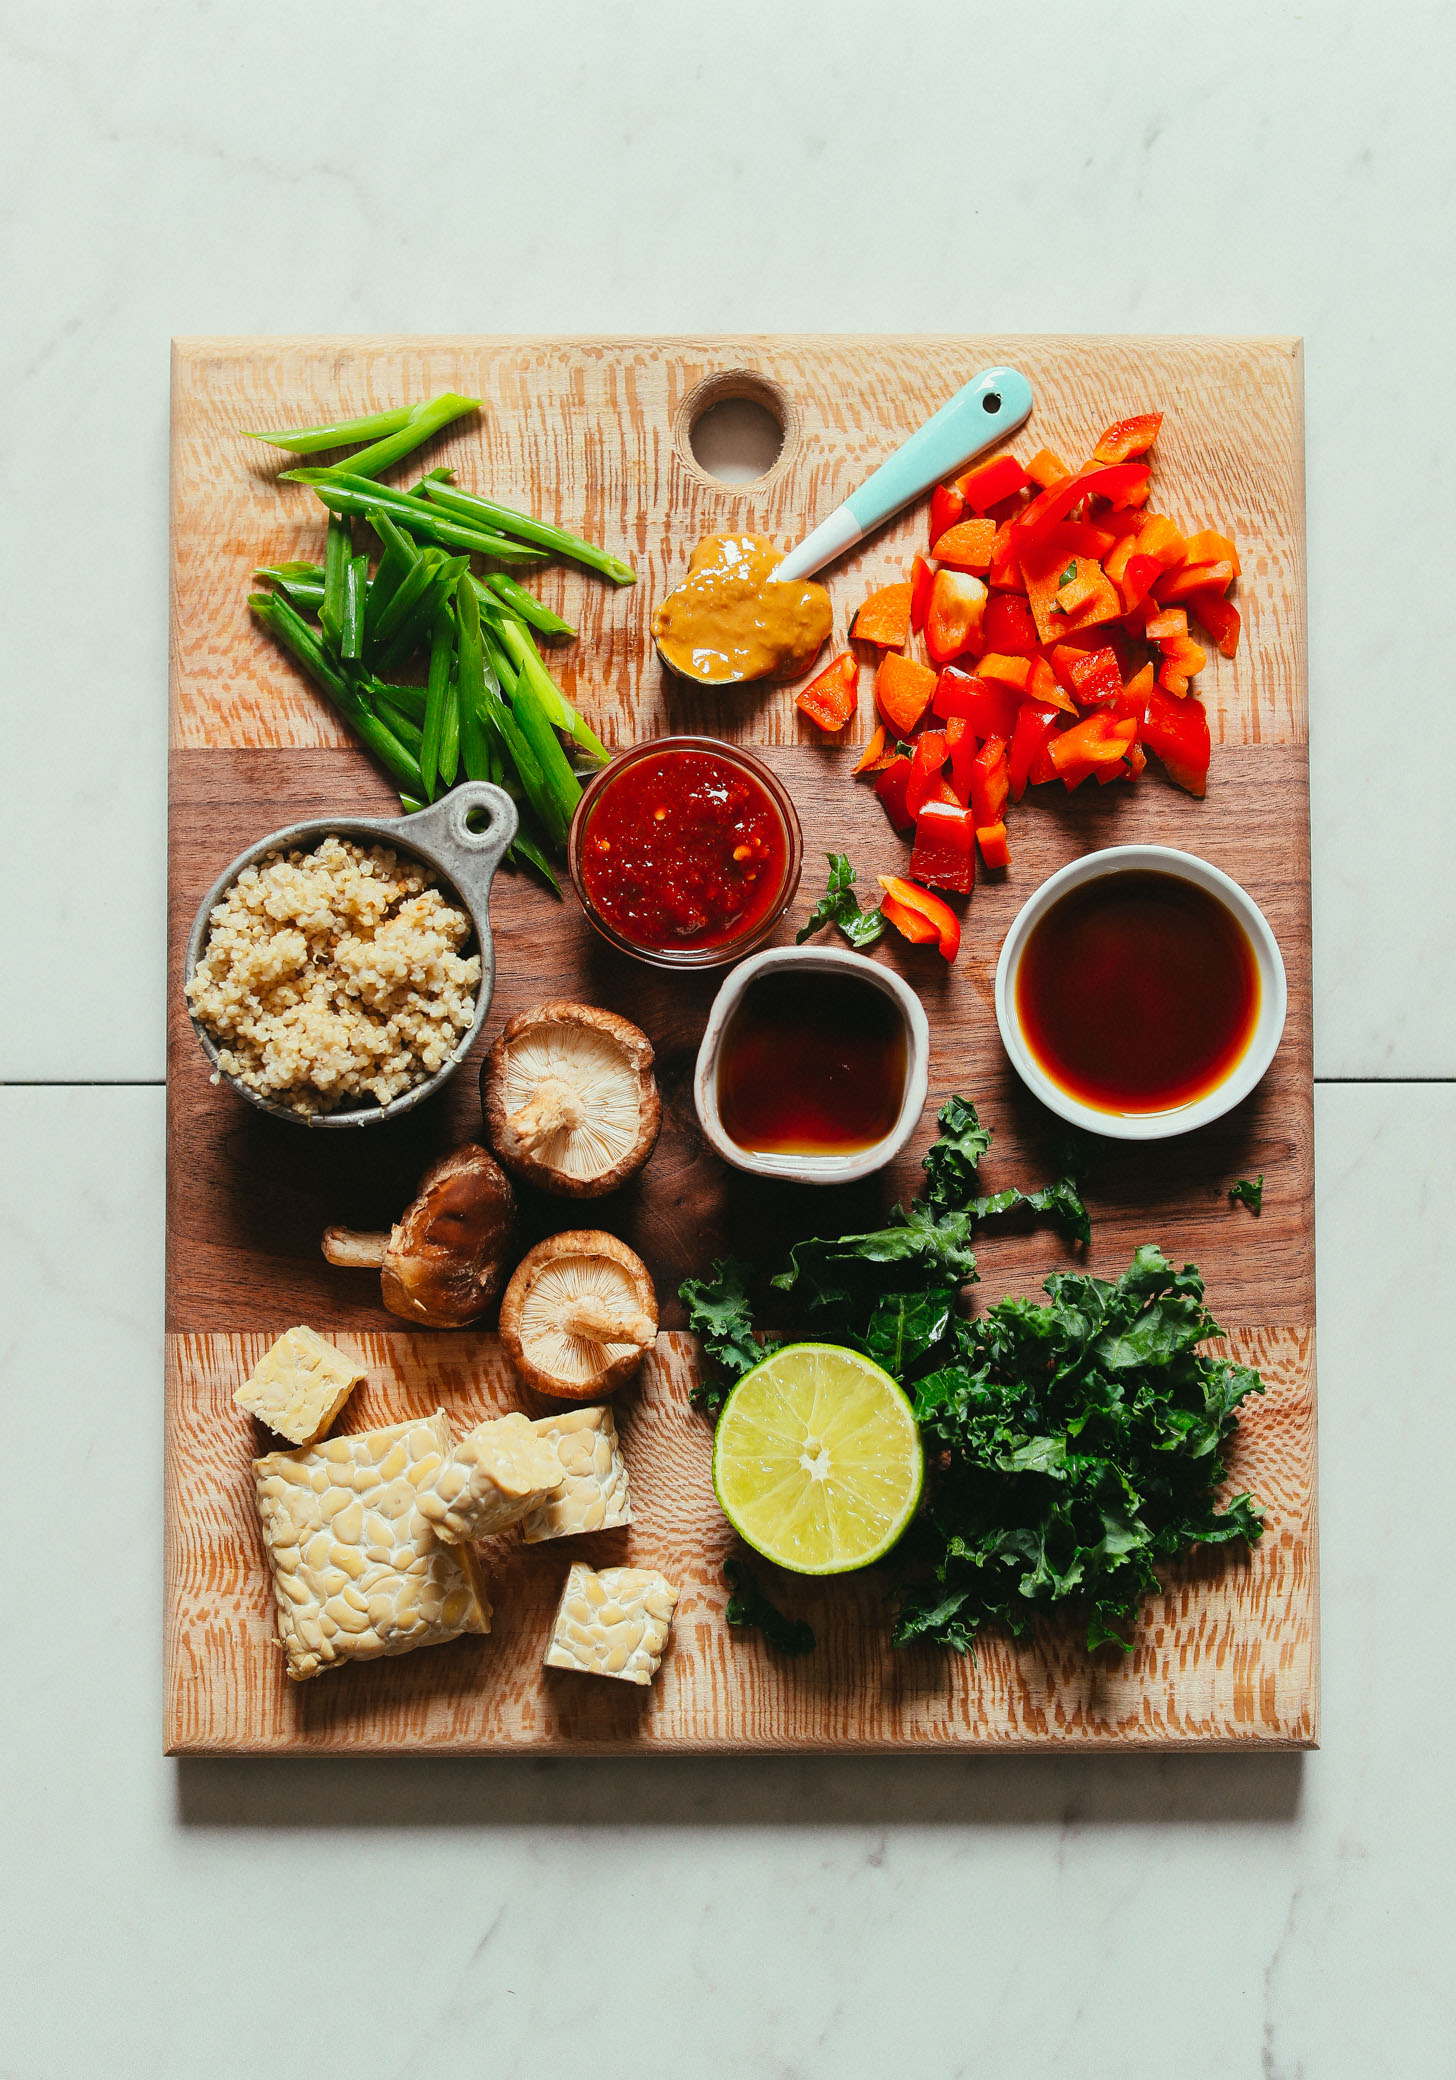 Overhead image of cutting board with ingredients for a tempeh stir fry including tempeh quinoa bell pepper green onion and kale